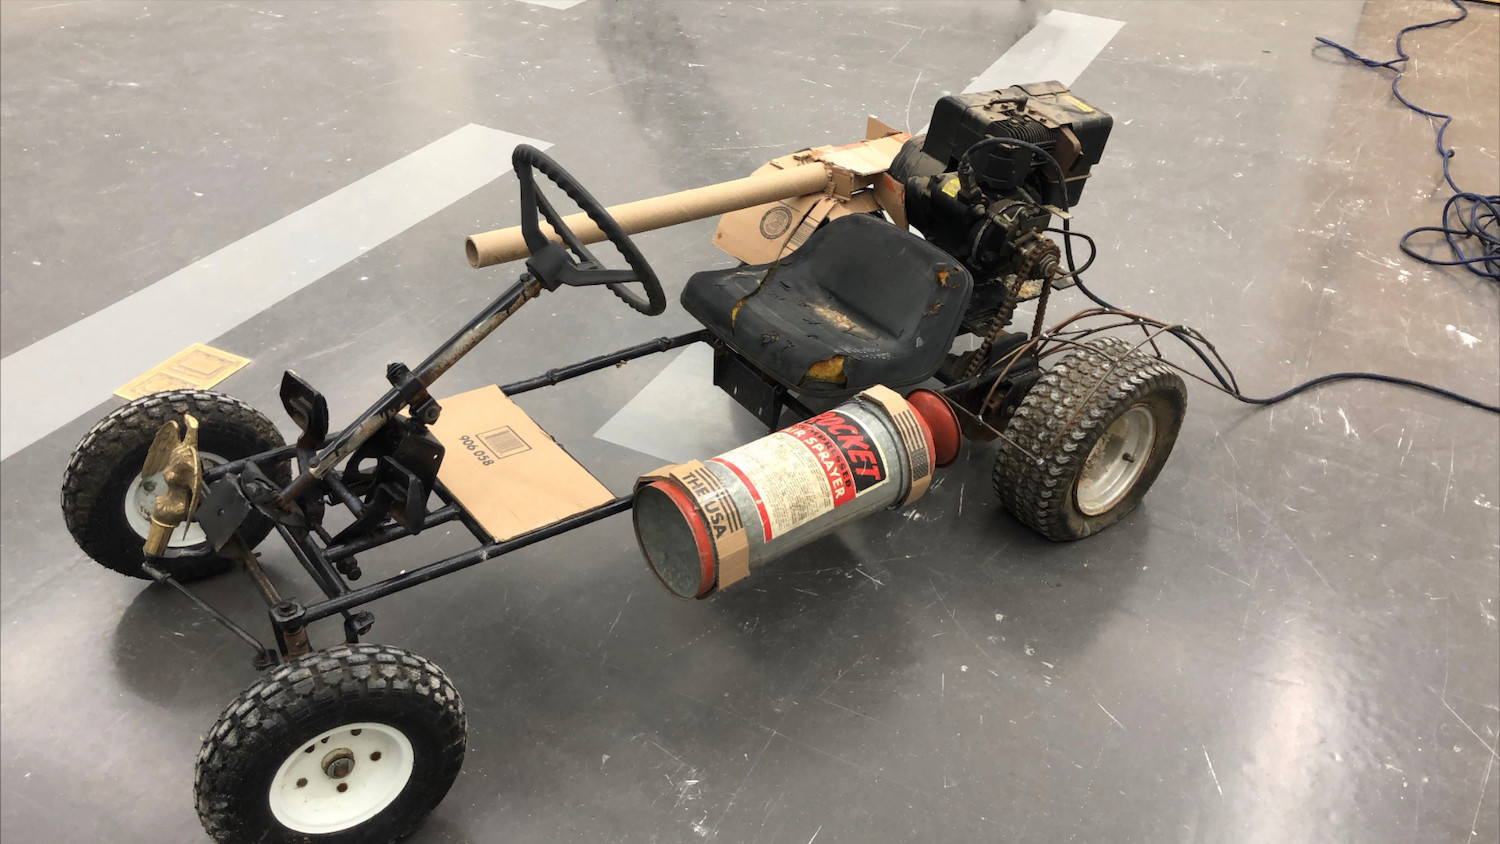 Go- Go-Go Getting the fuck out of here kart, Found Object and Carboard, 2' x 5' x 2', 2020